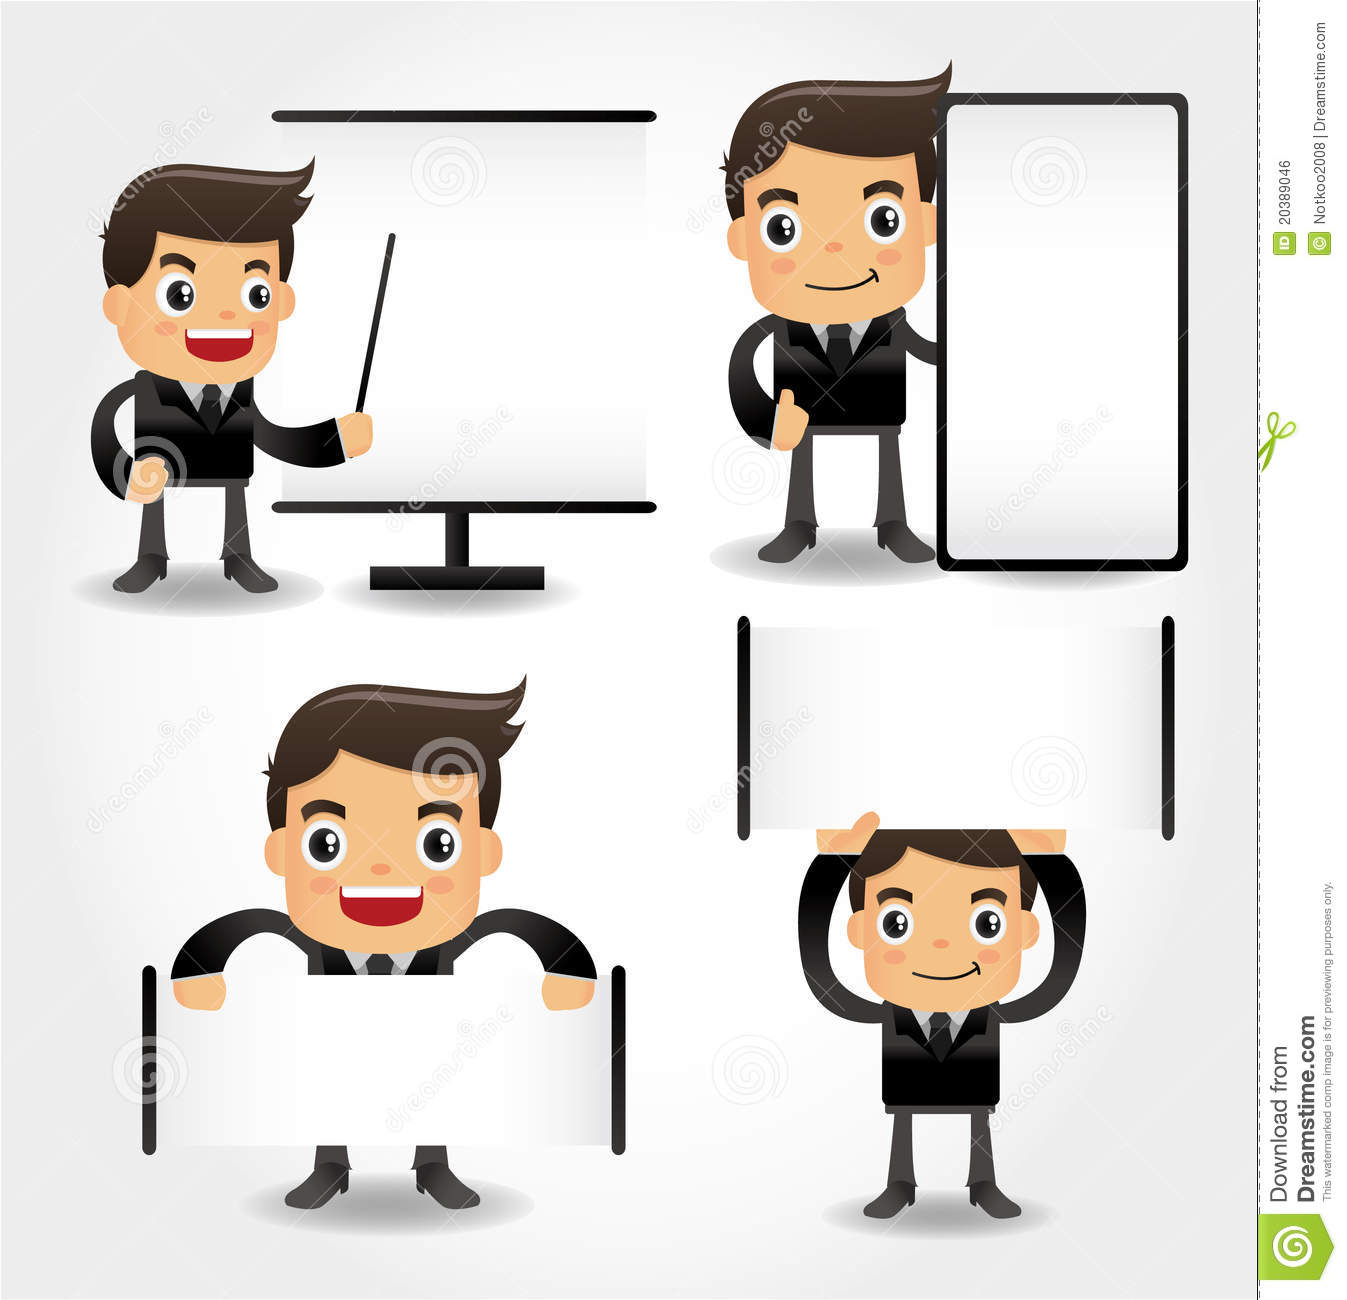 Set Of Funny Cartoon Office Worker Icon Royalty Free Stock Image ...